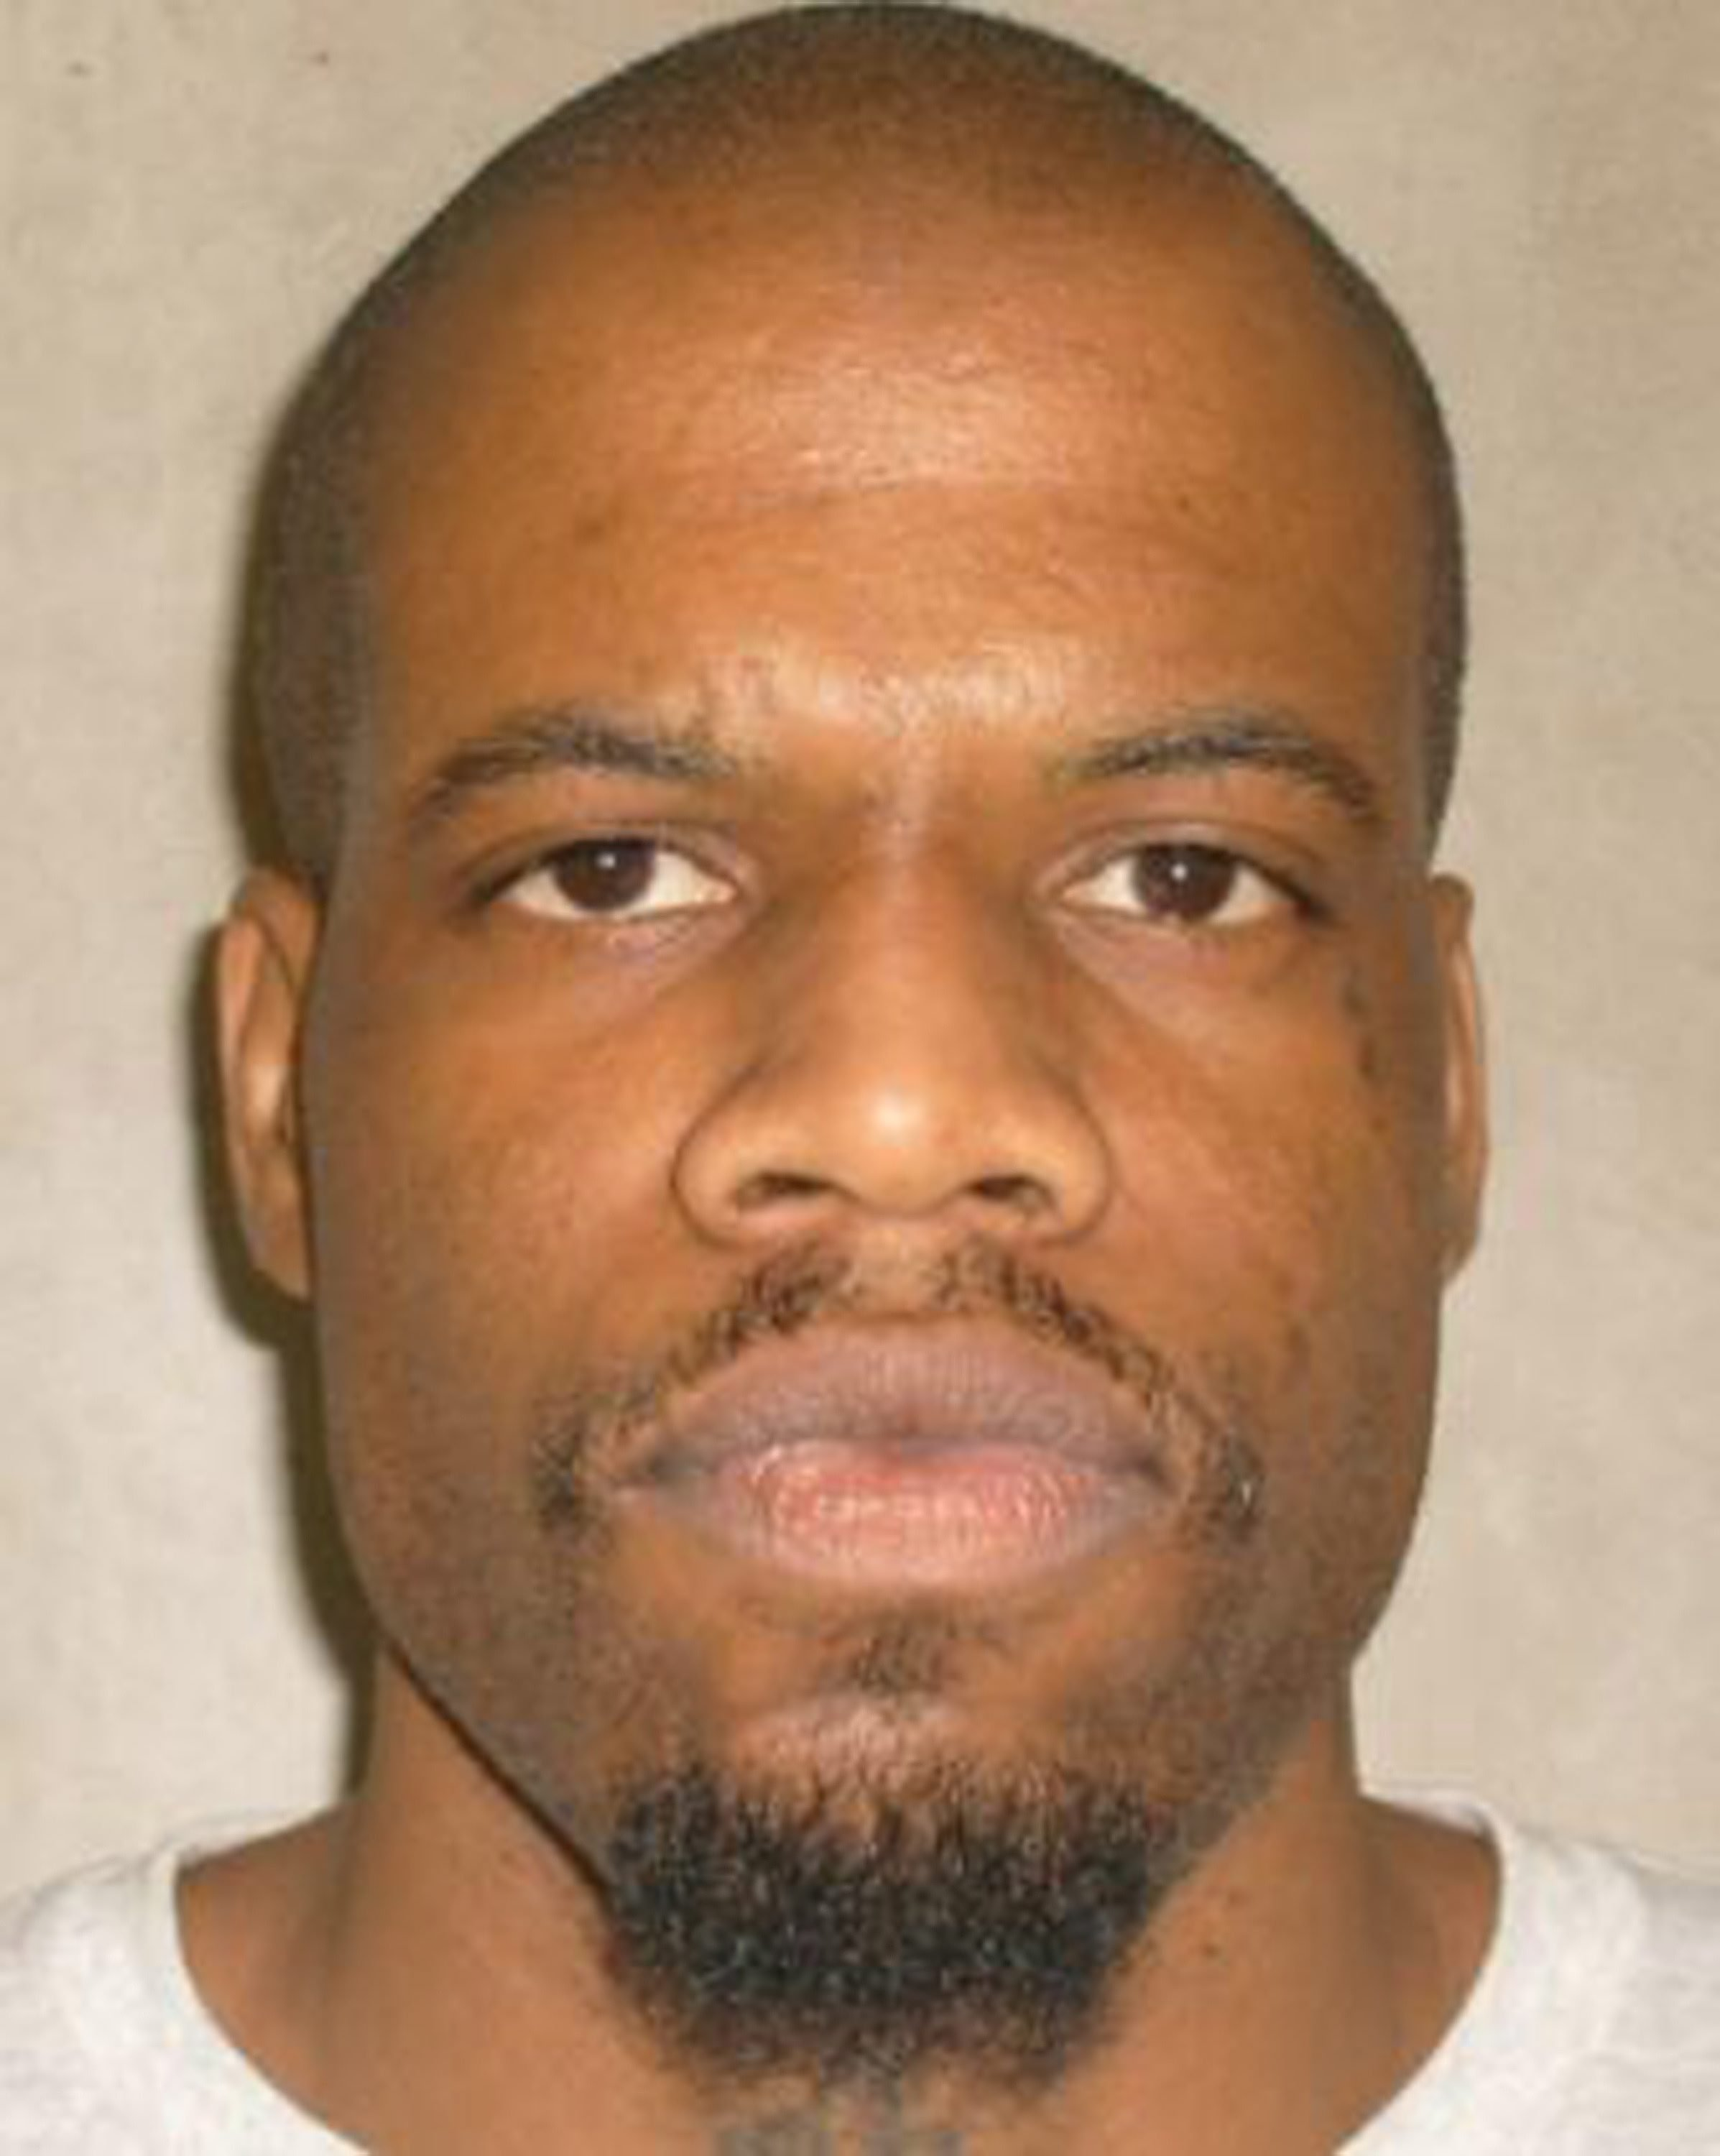 A mugshot of Clayton Lockett on June 29, 2011.